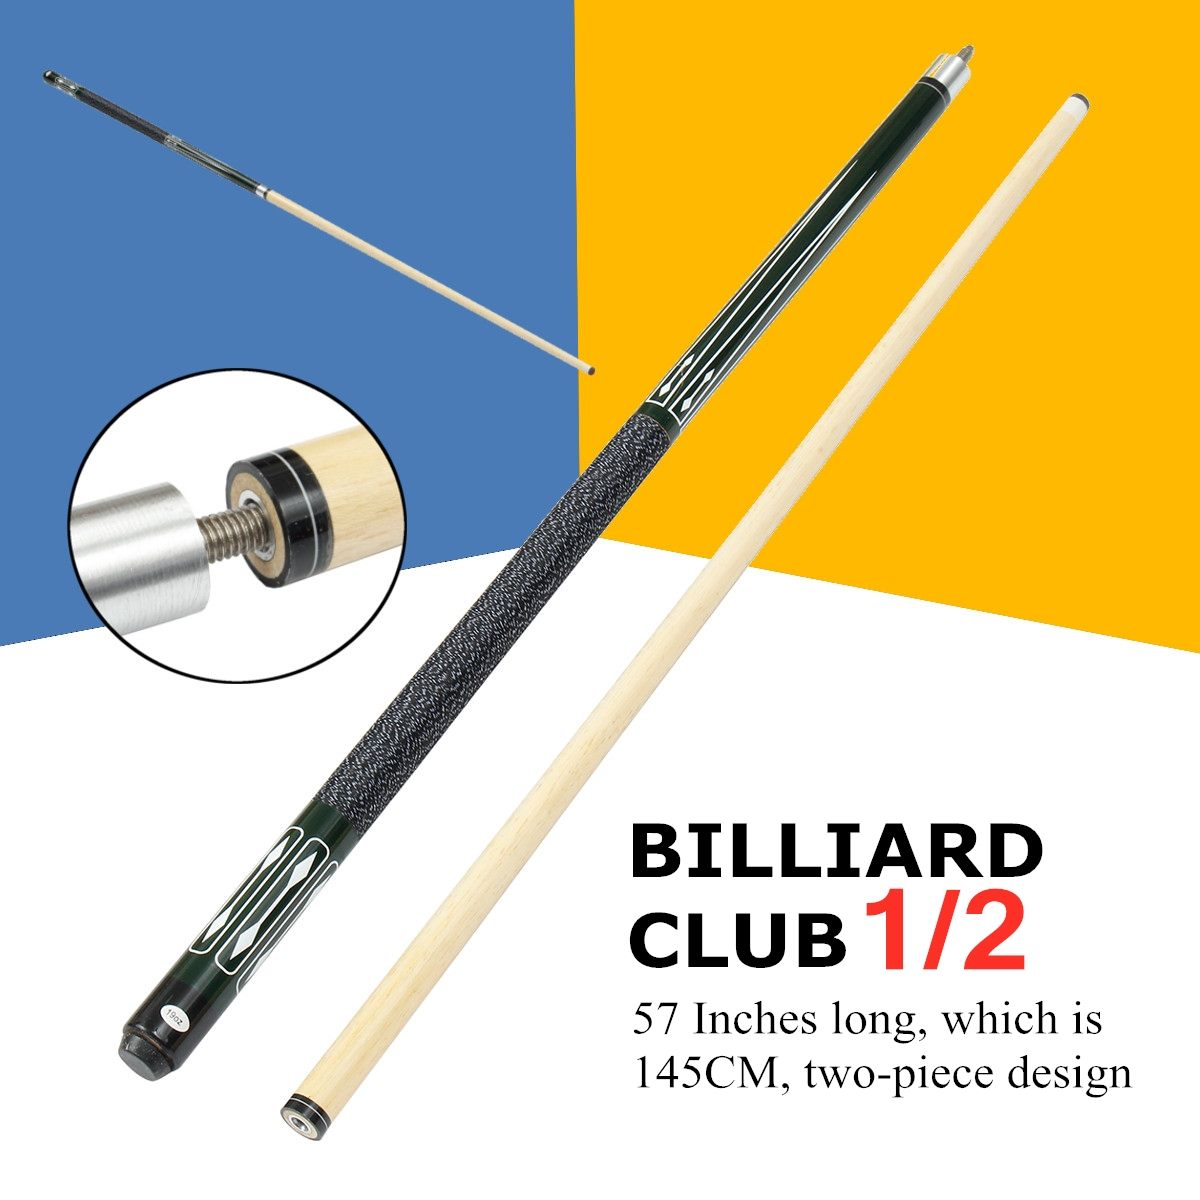 Billiard-Cue Pool-Cue-Stick Billiard-Shaft Wooden Pool-Cue-Tips Billiard House Bar Entertainment Snooker Accessories